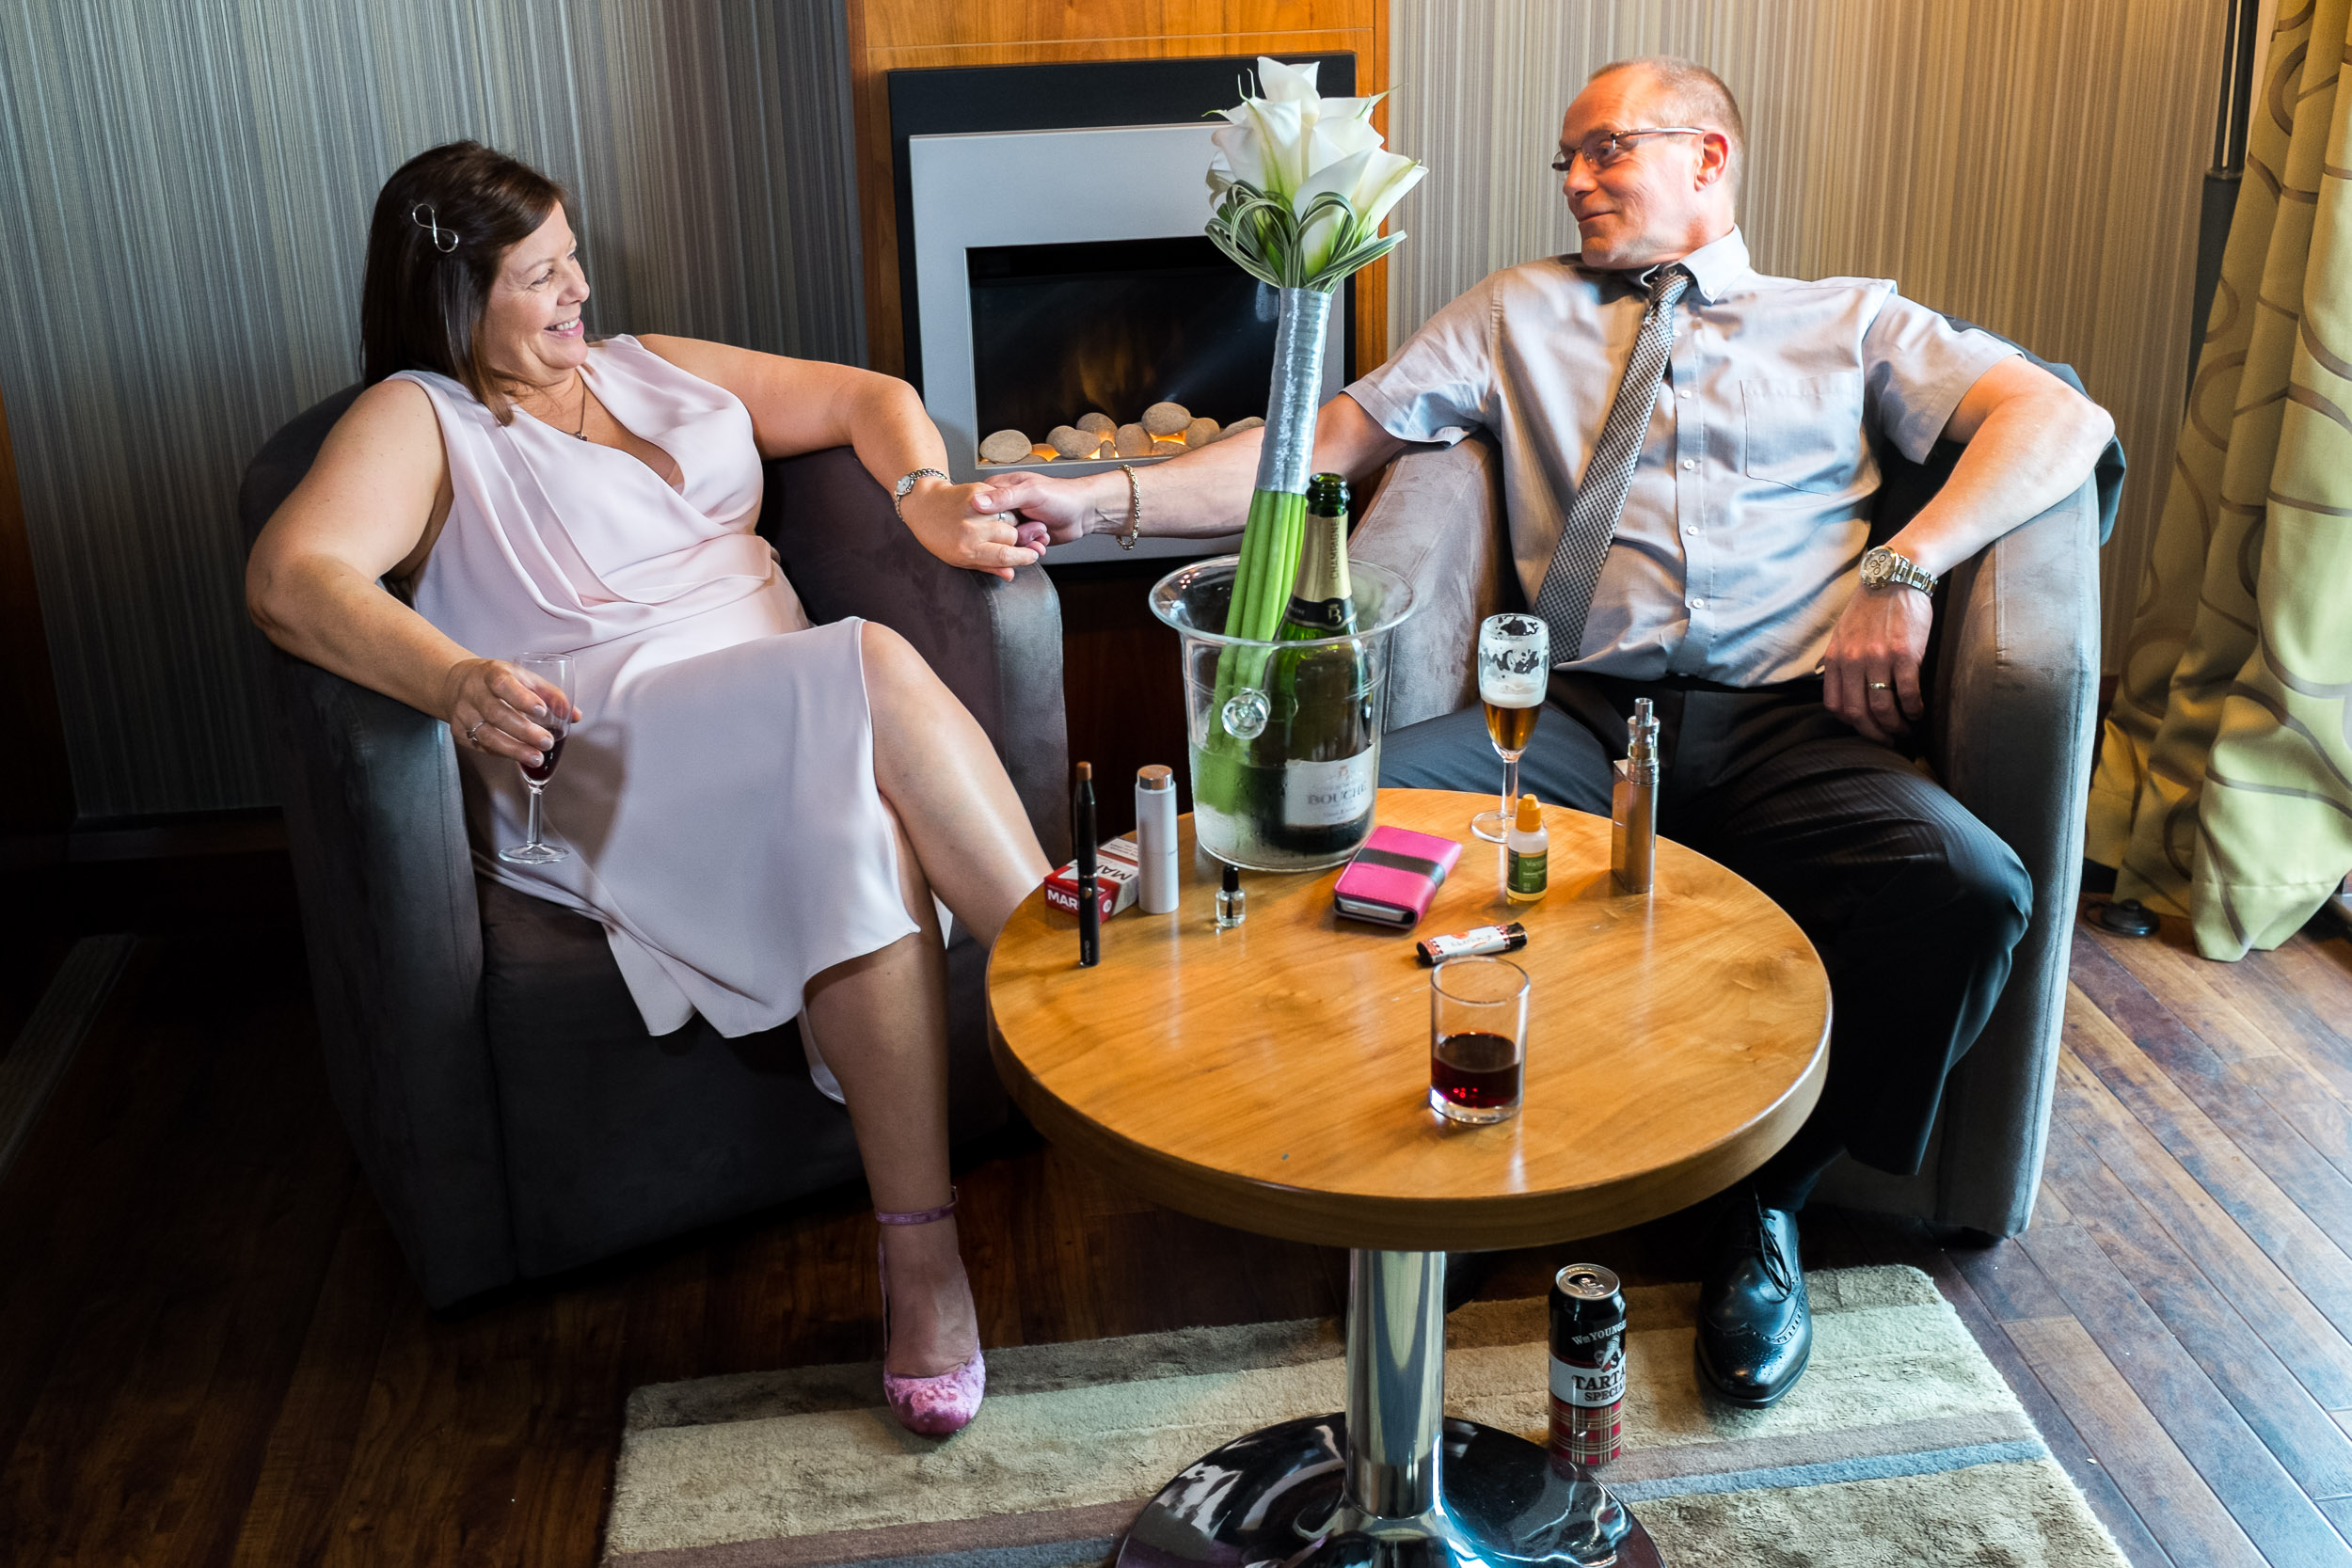 Gretna Green project - Susan and Phil Duncan after wedding back at Smith's Hotel